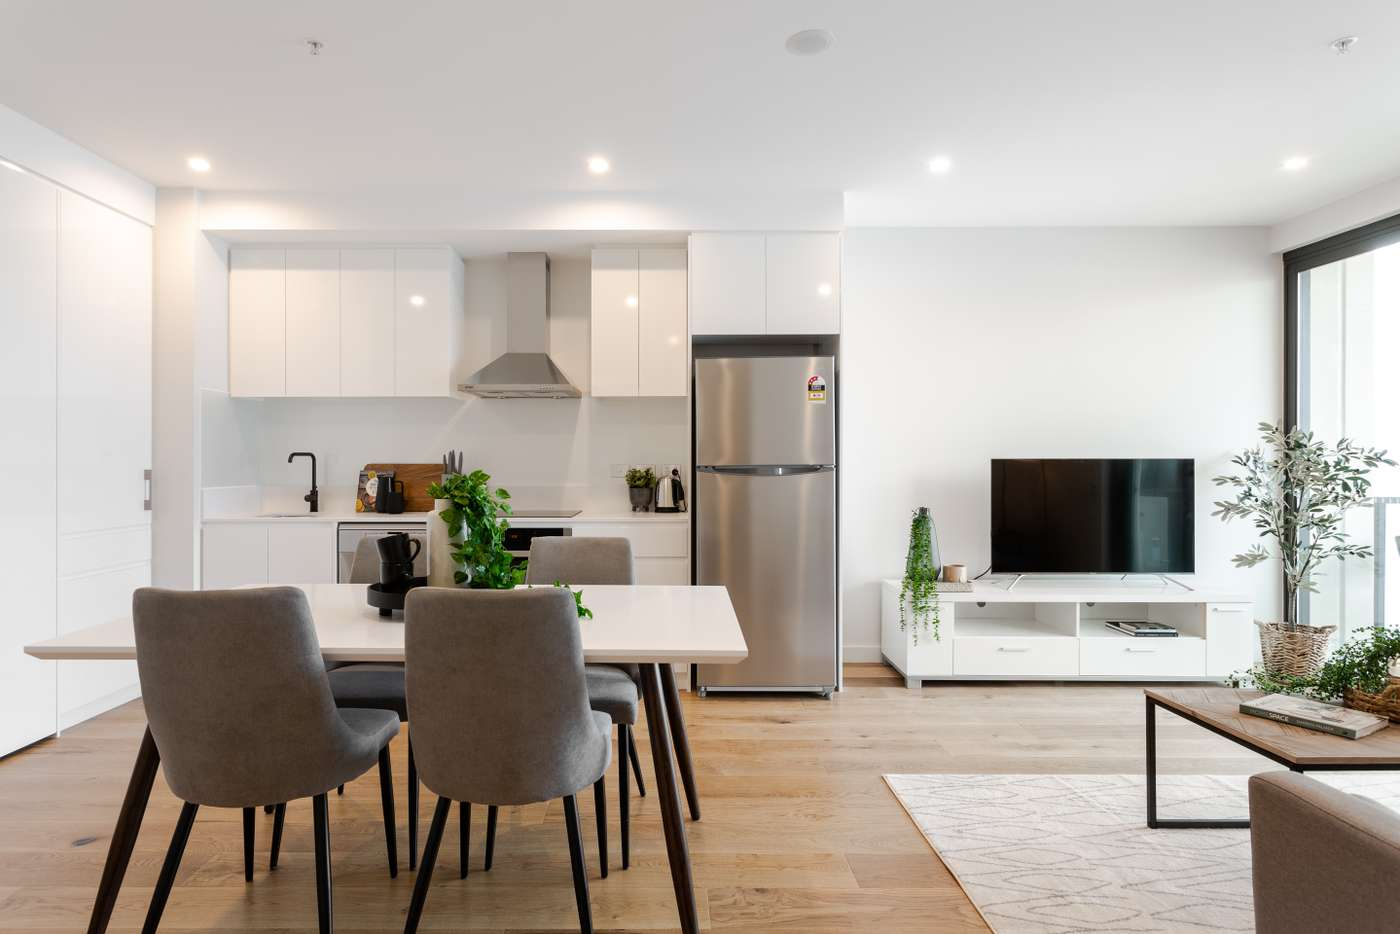 Main view of Homely apartment listing, 1402/297 Pirie Street, Adelaide SA 5000